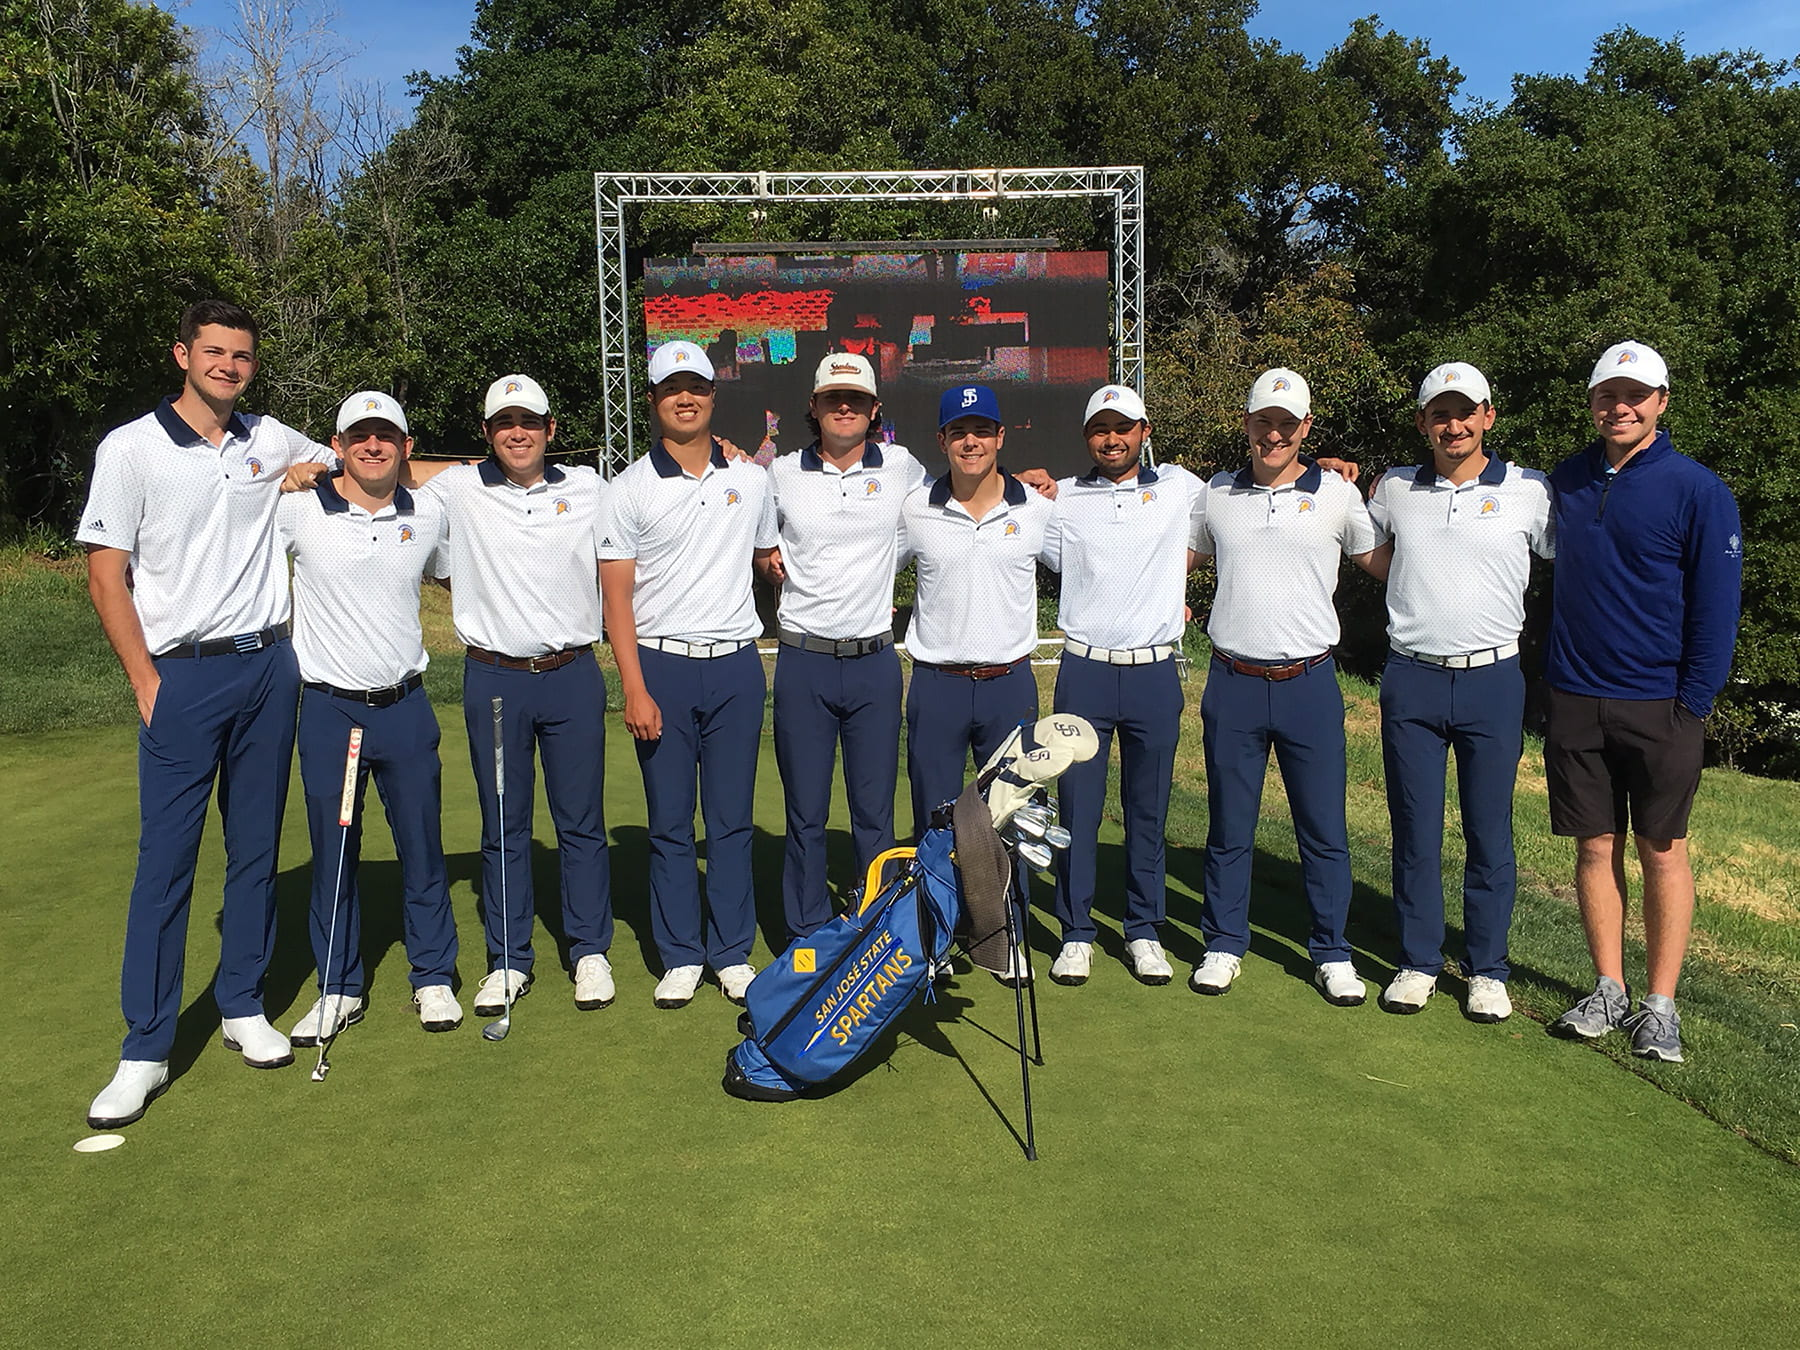 The Golf Coaches Association of America honored SJSU's Mens Golf team for its academic achievements in 2018-19.